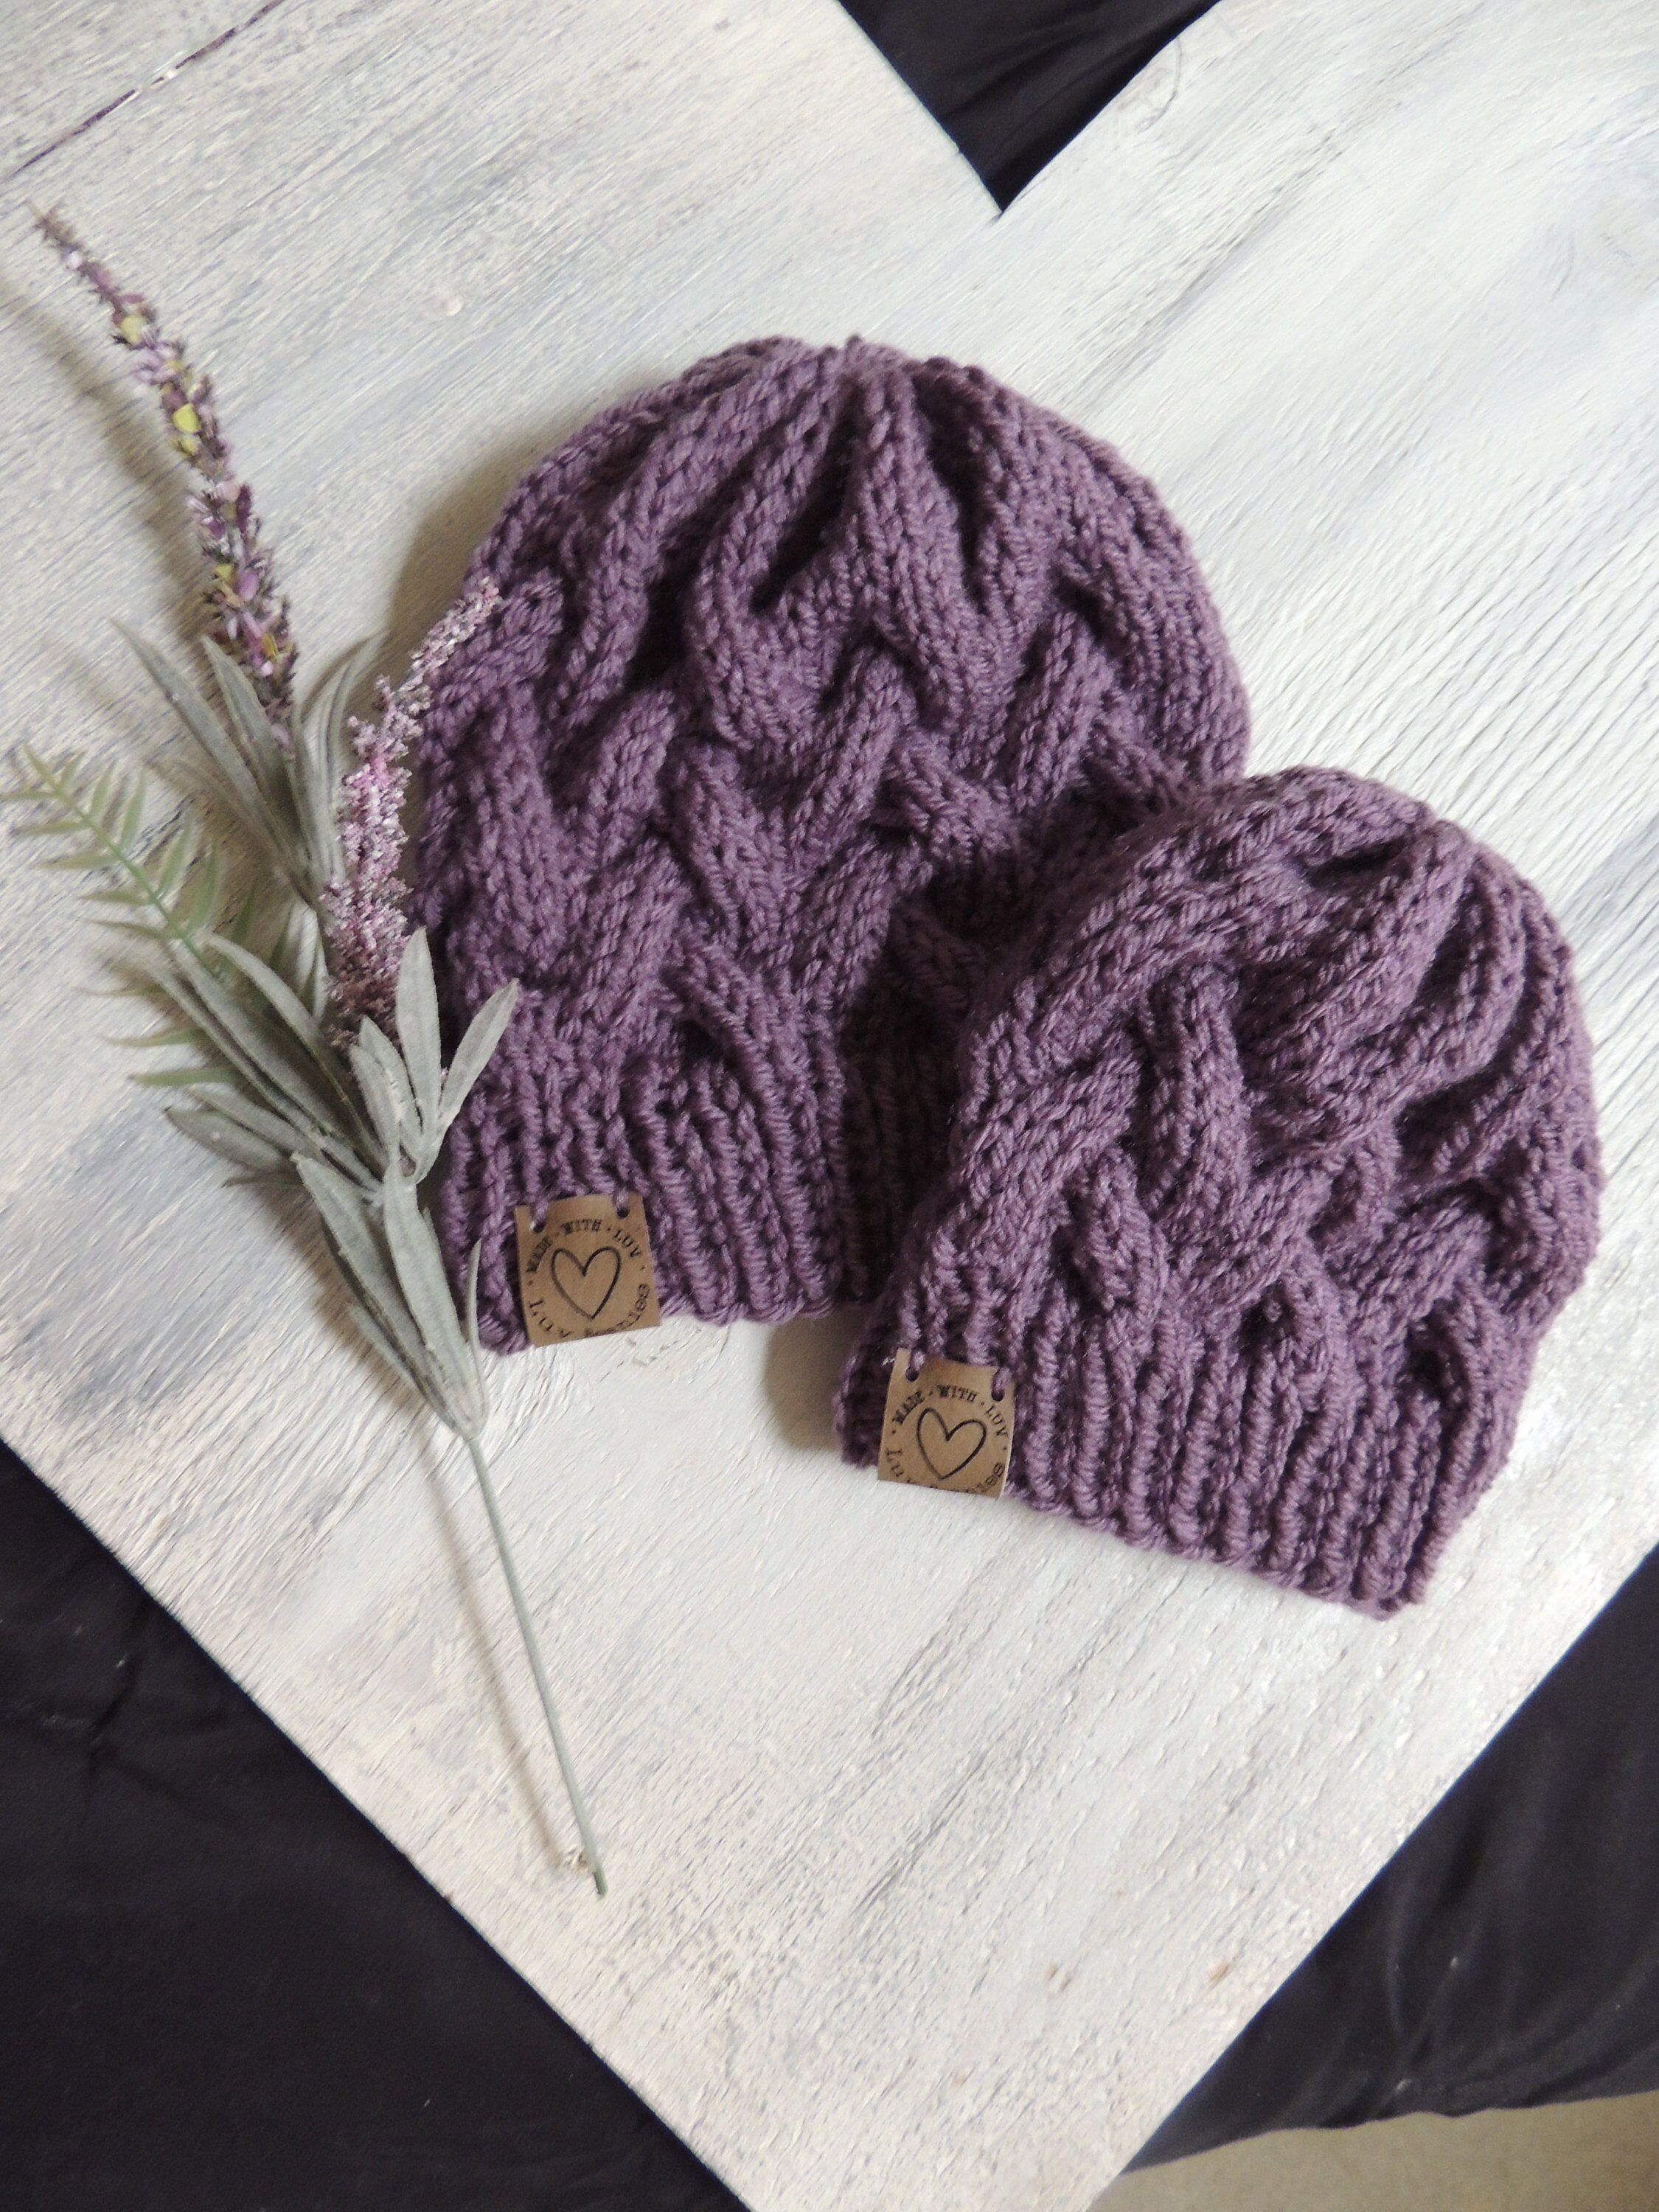 Excited To Share This Item From My Etsy Shop Knit Ski Hats Luv Beanies Girl Hats Knit Stocking Hats Girl Stockin Knitted Hats Stocking Hat Cable Knit Hat